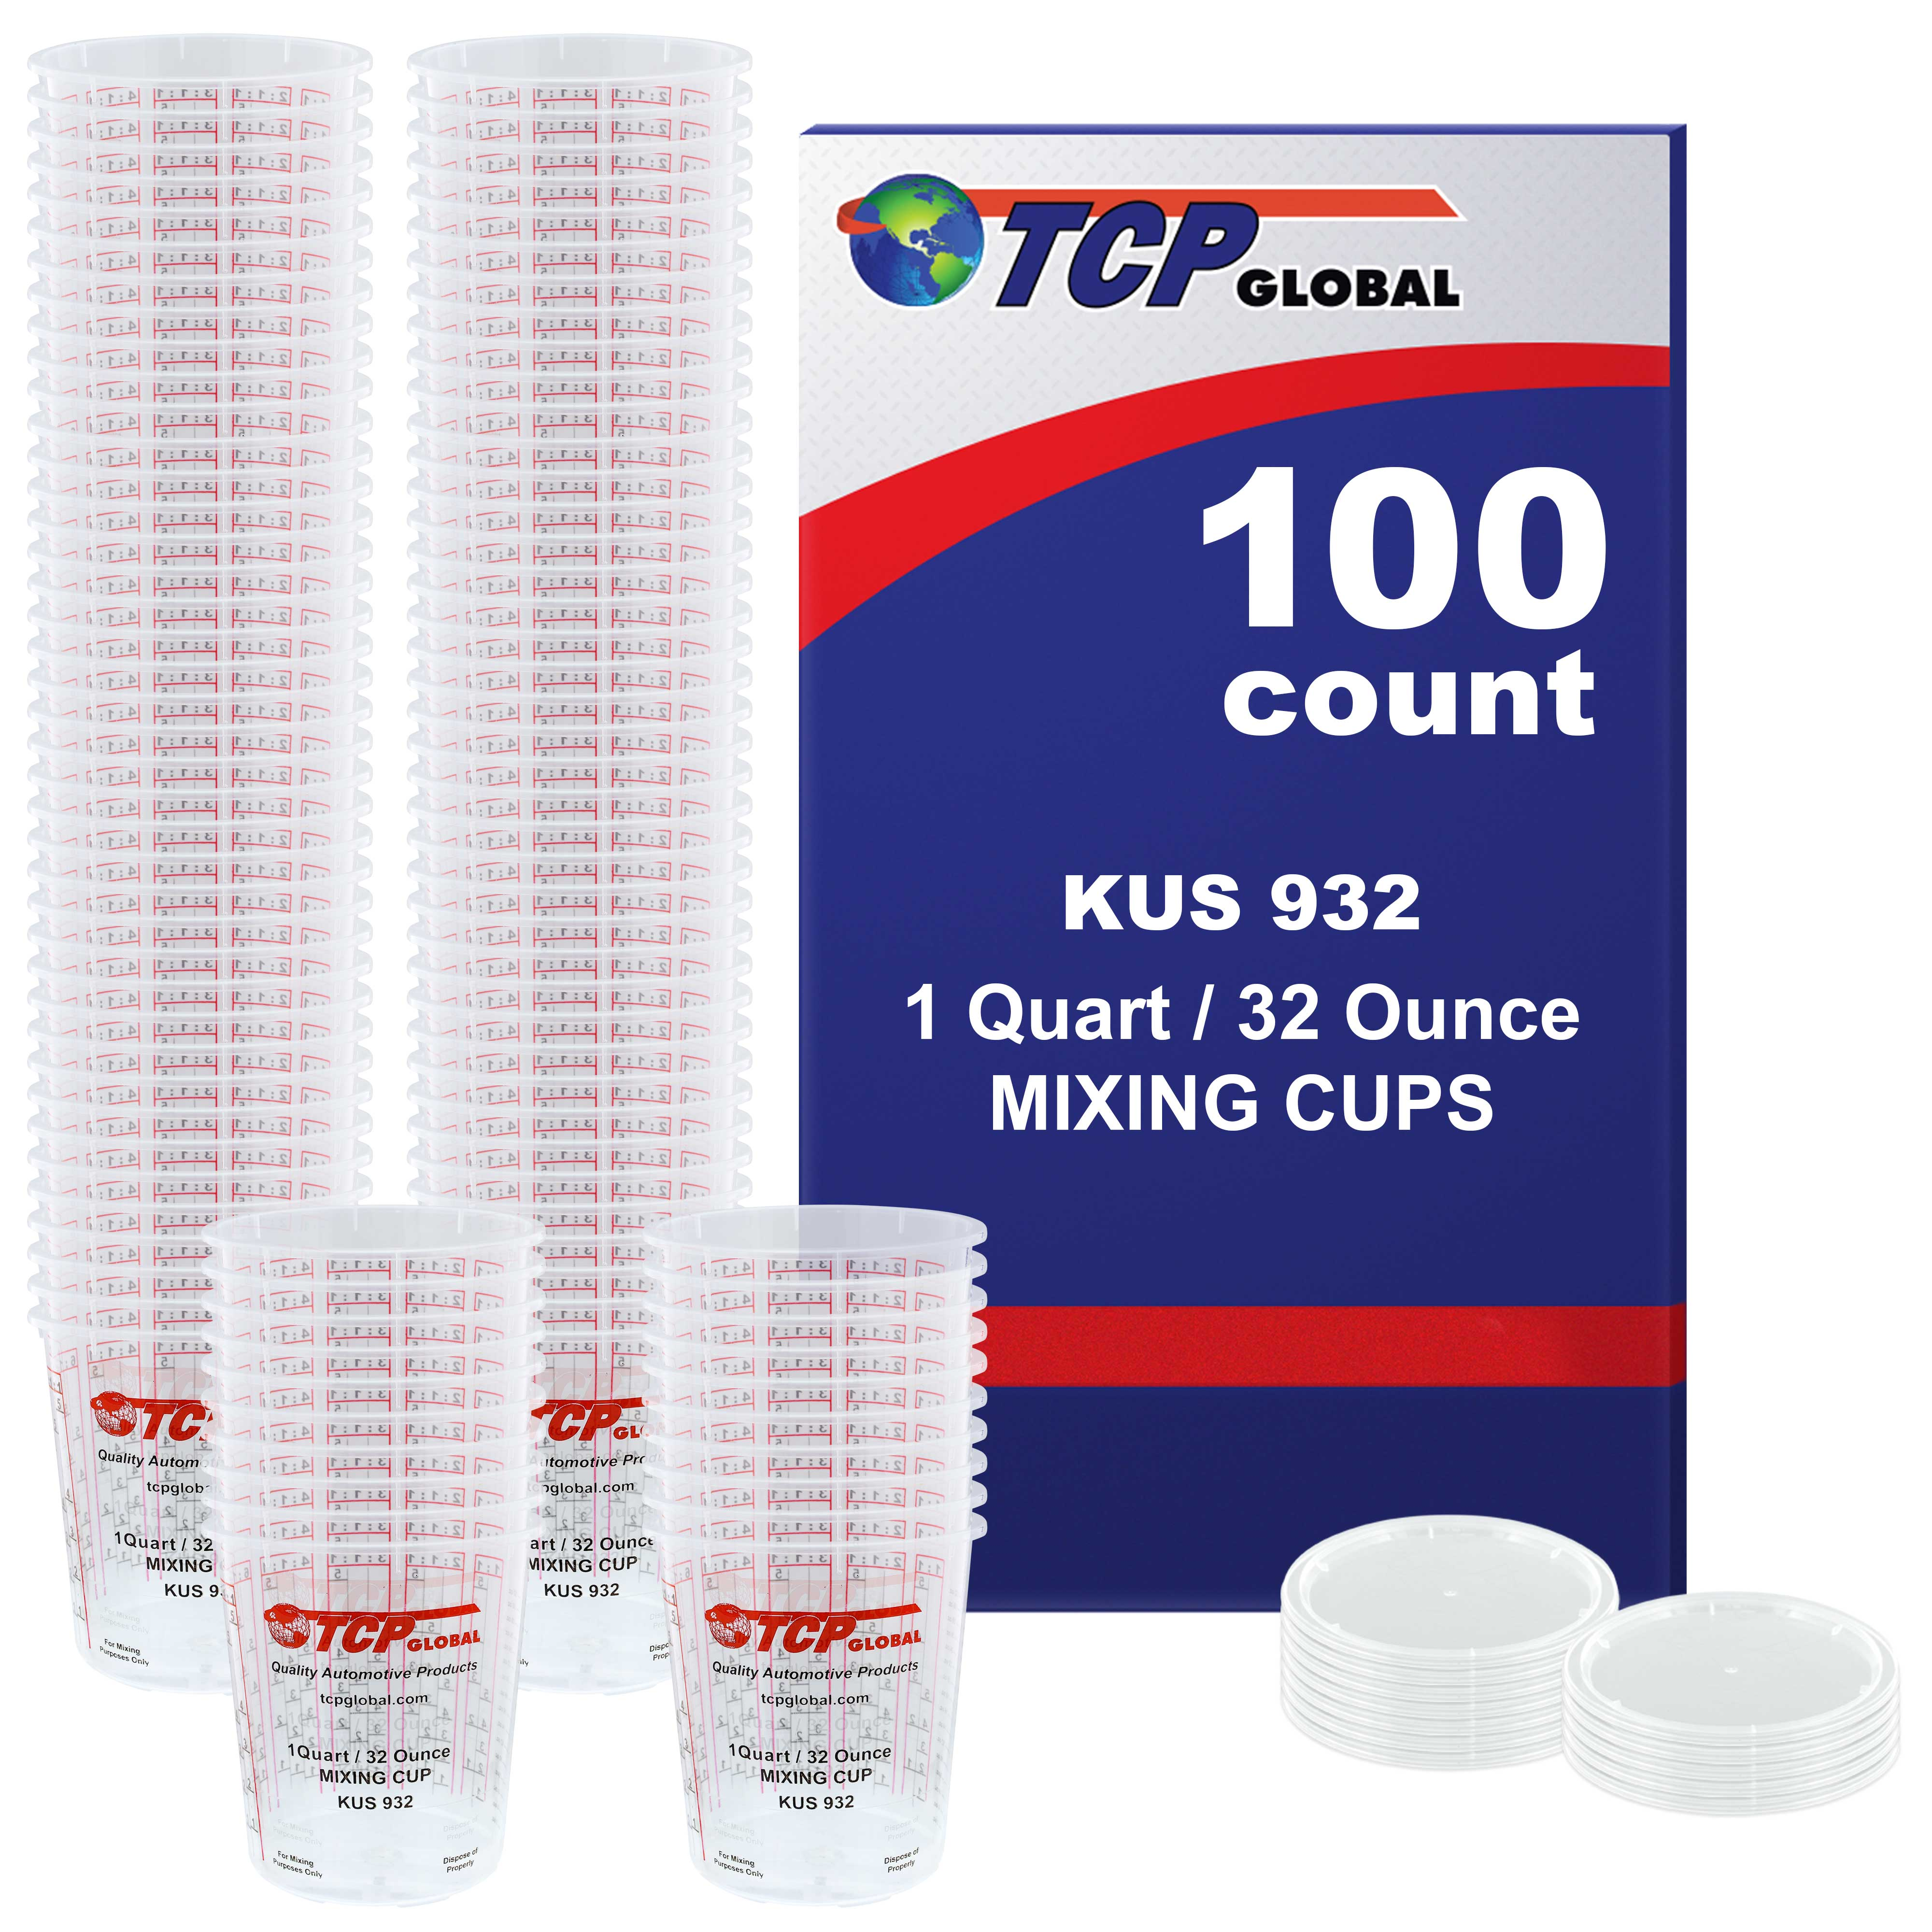 Box of 100 - Mix Cups - Quart size - 32 ounce Volume Paint and Epoxy Mixing Cups - Mix Cups Are Calibrated with Multiple Mixing Ratios - Includes 12 Bonus Lids